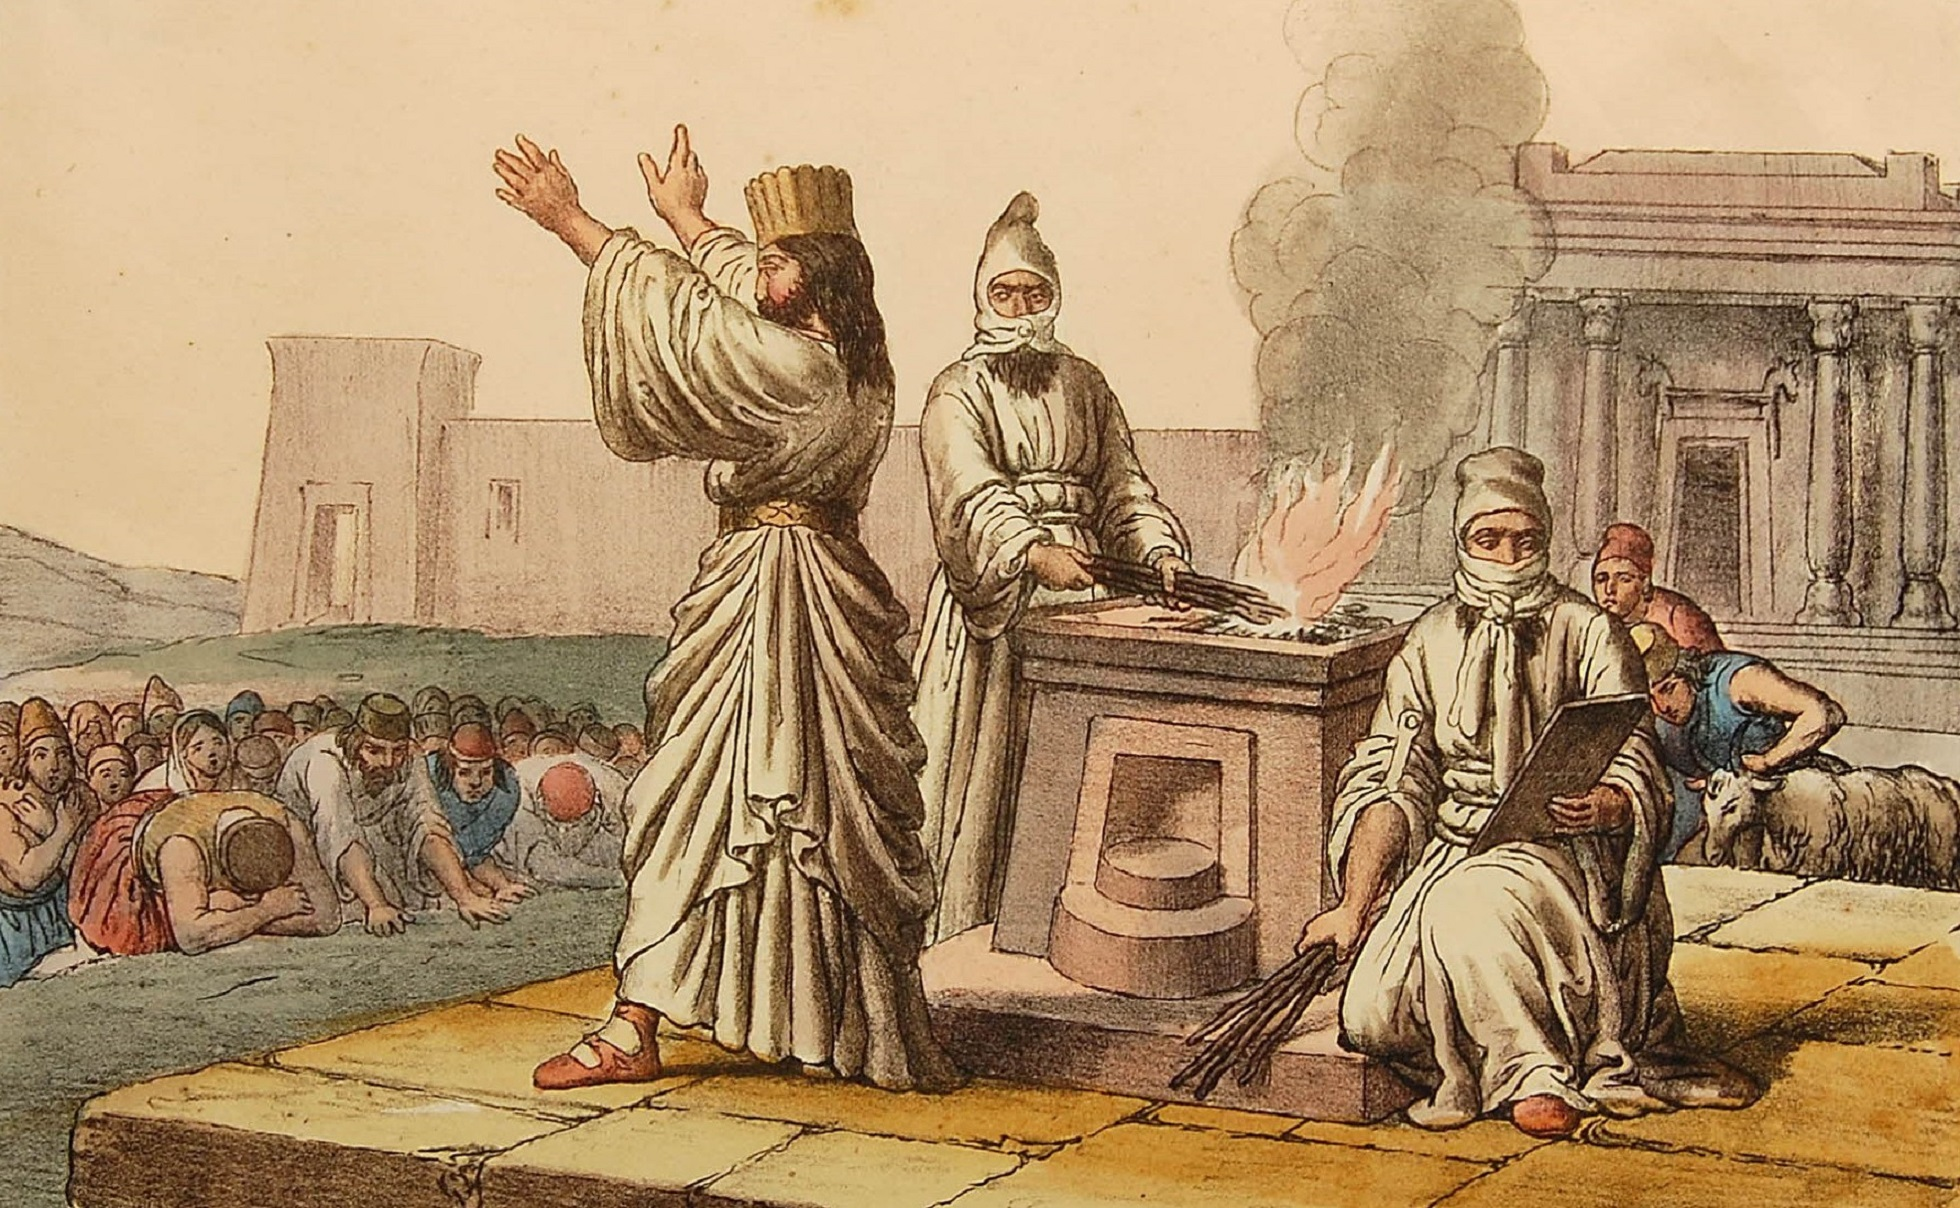 Three priests around a fire altar, performing a ceremony to a congregation